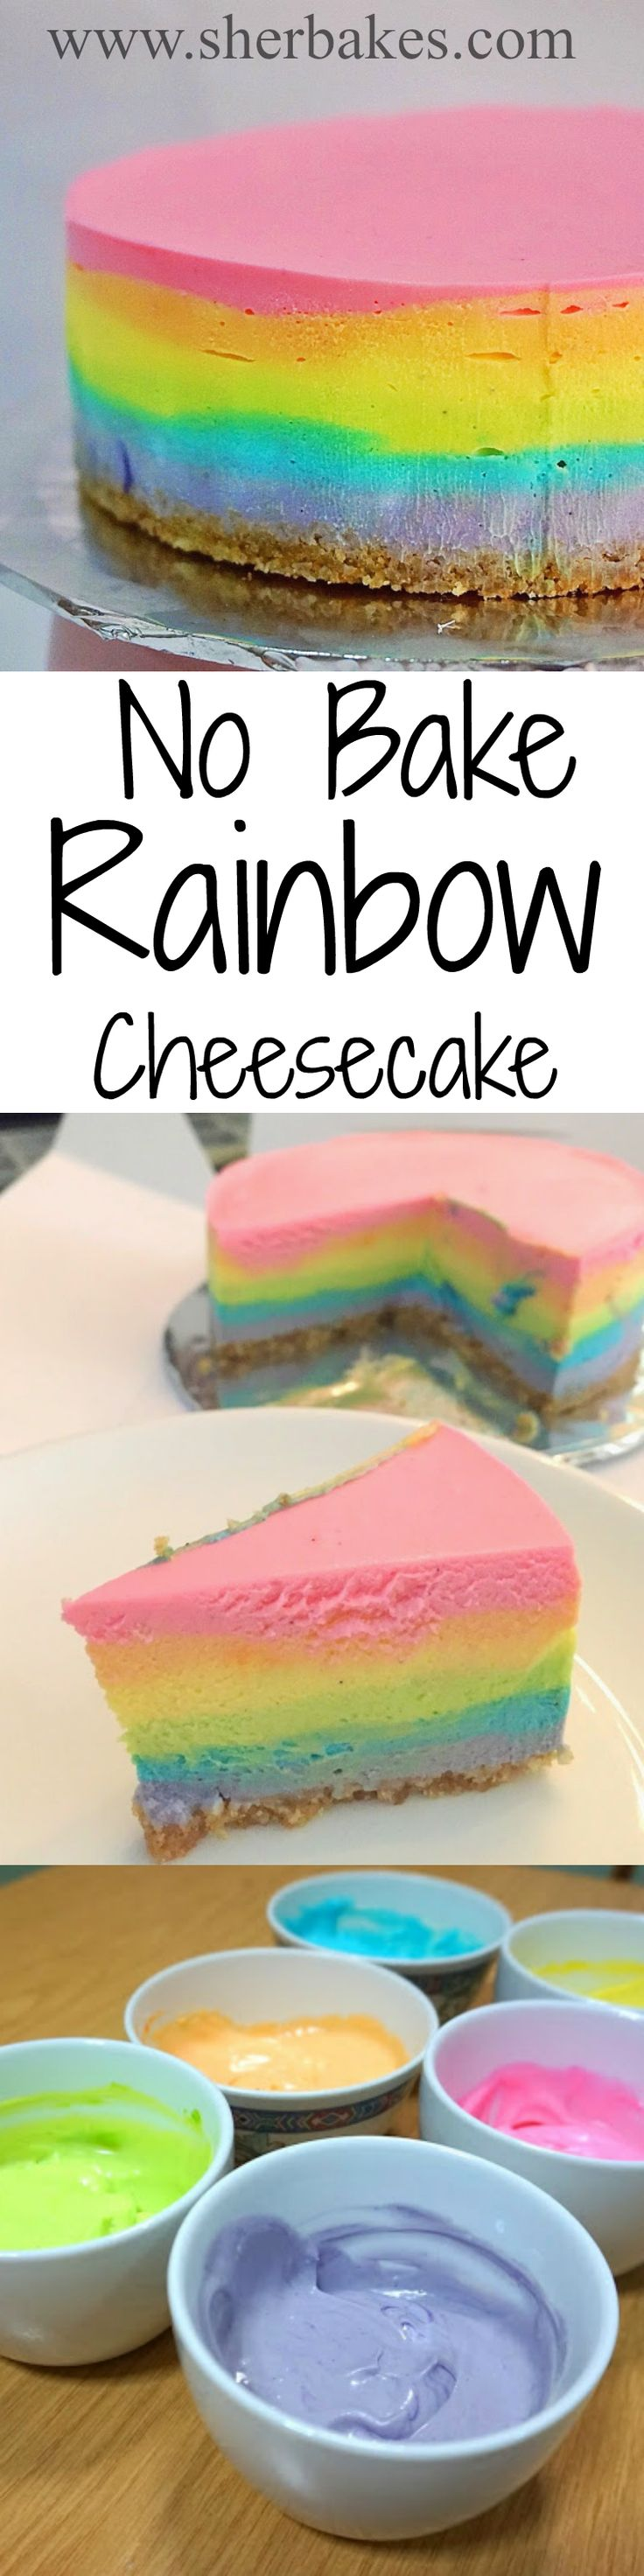 Steps on how easy it is to make a RAINBOW no bake cheesecake!! SO PRETTY toooo!! Now everyone loves a rainbow cake